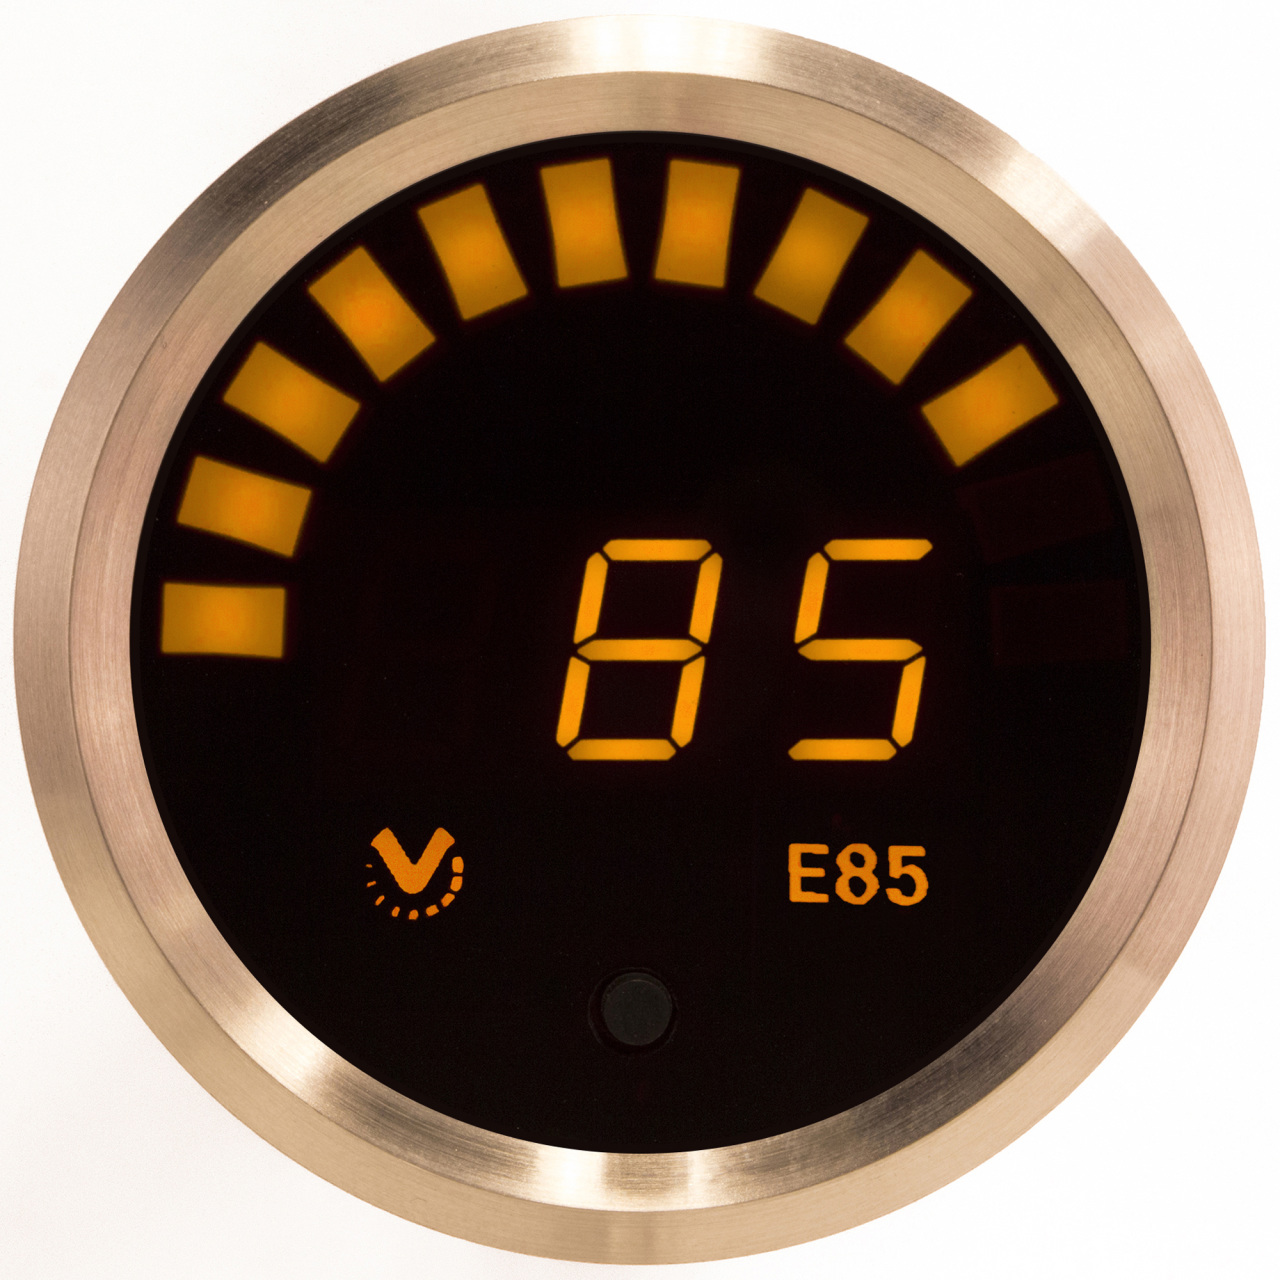 e85 ethanol to gasoline content ratio gauge egaugesplus. Black Bedroom Furniture Sets. Home Design Ideas